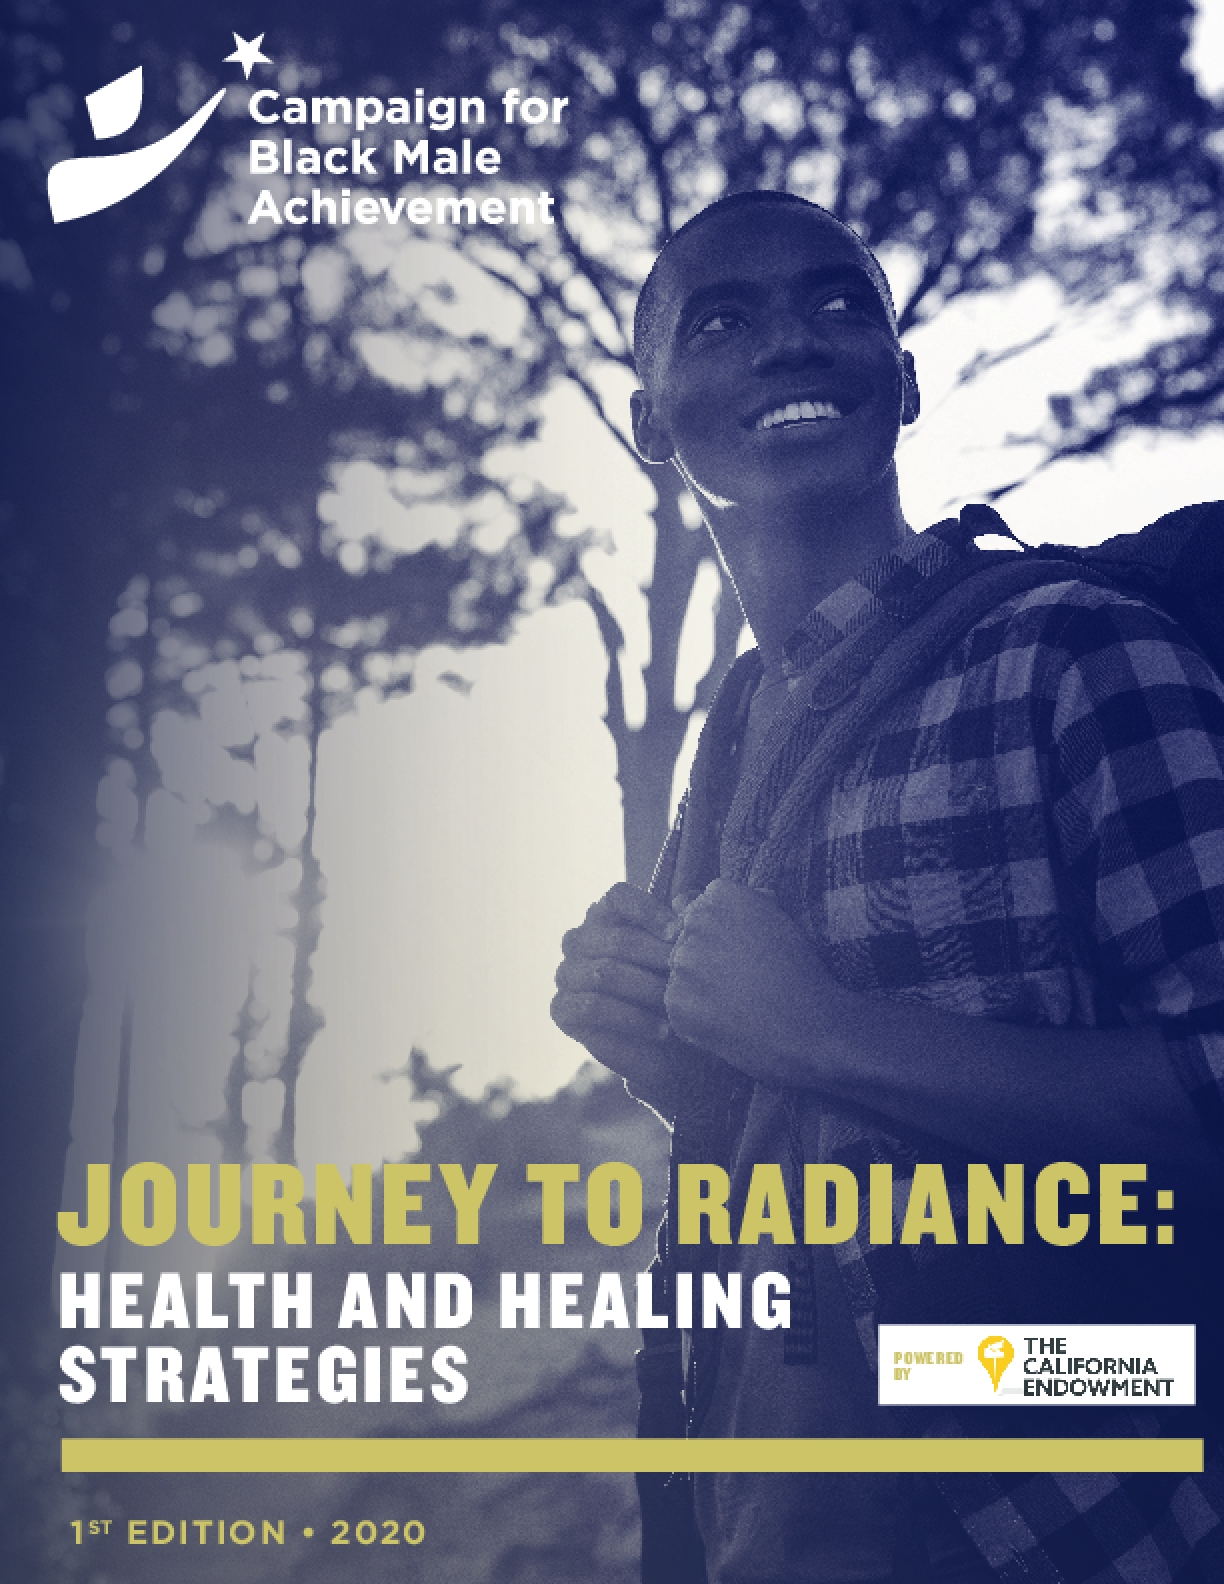 JOURNEY TO RADIANCE: HEALTH AND HEALING STRATEGIES